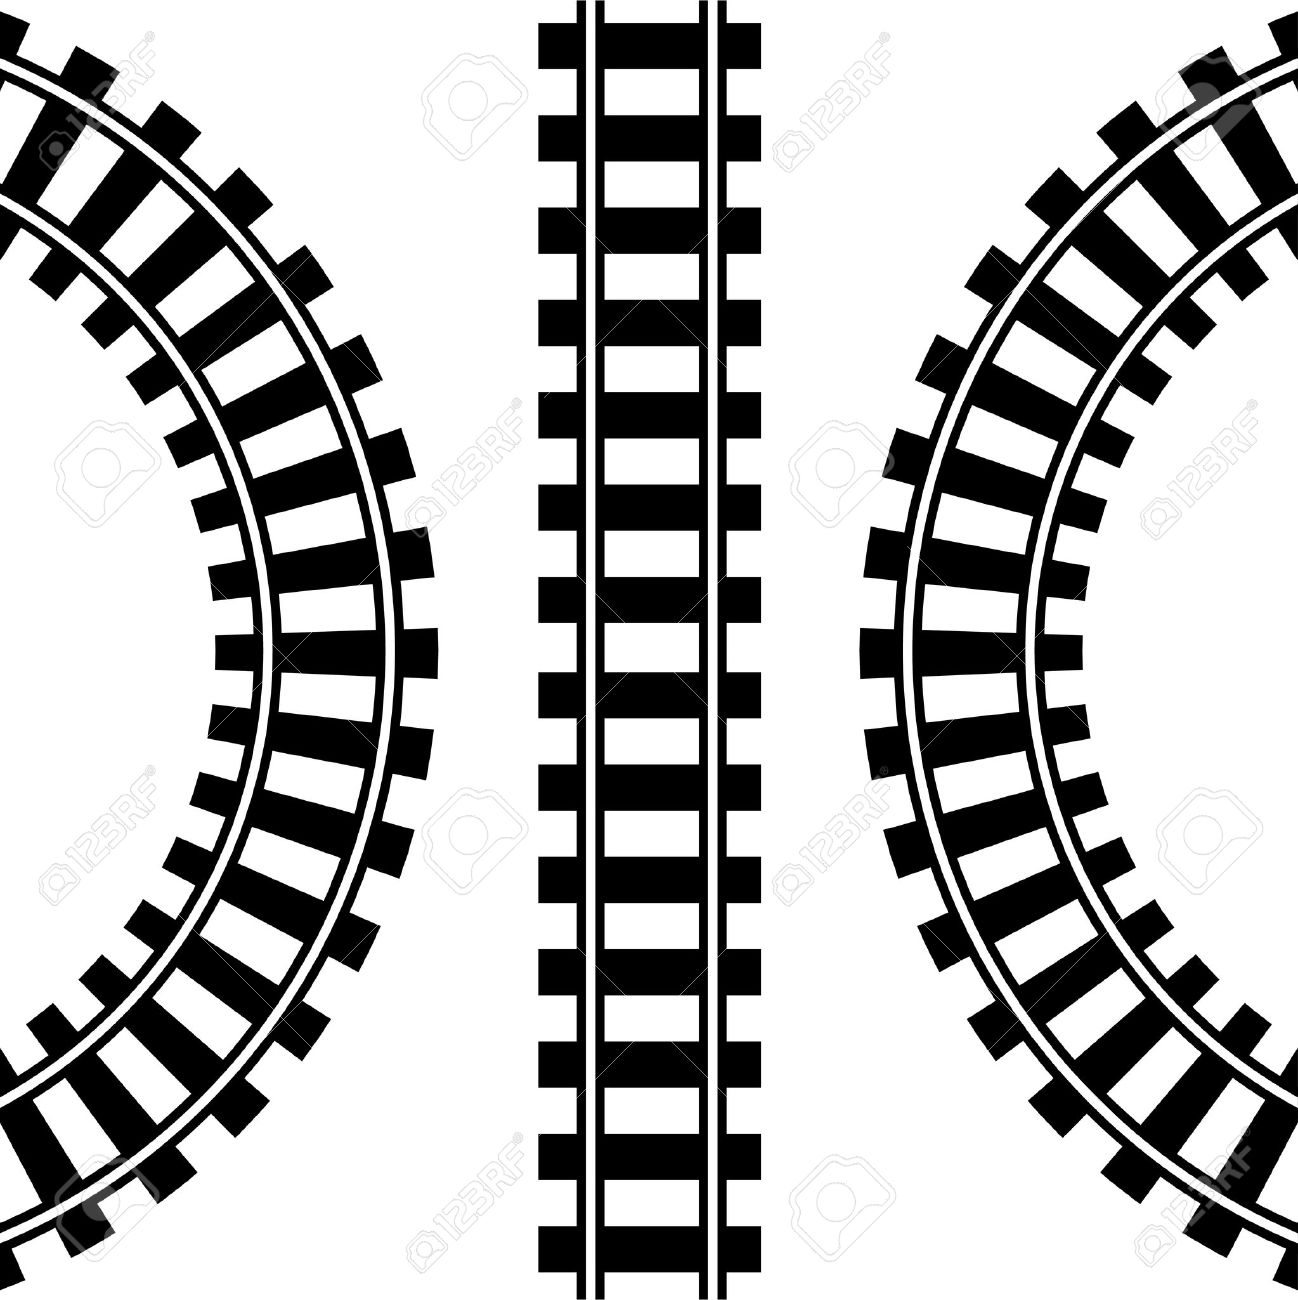 rail track drawing at getdrawings com free for personal use rail rh getdrawings com Railroad Tracks Illustration rail tracks clipart